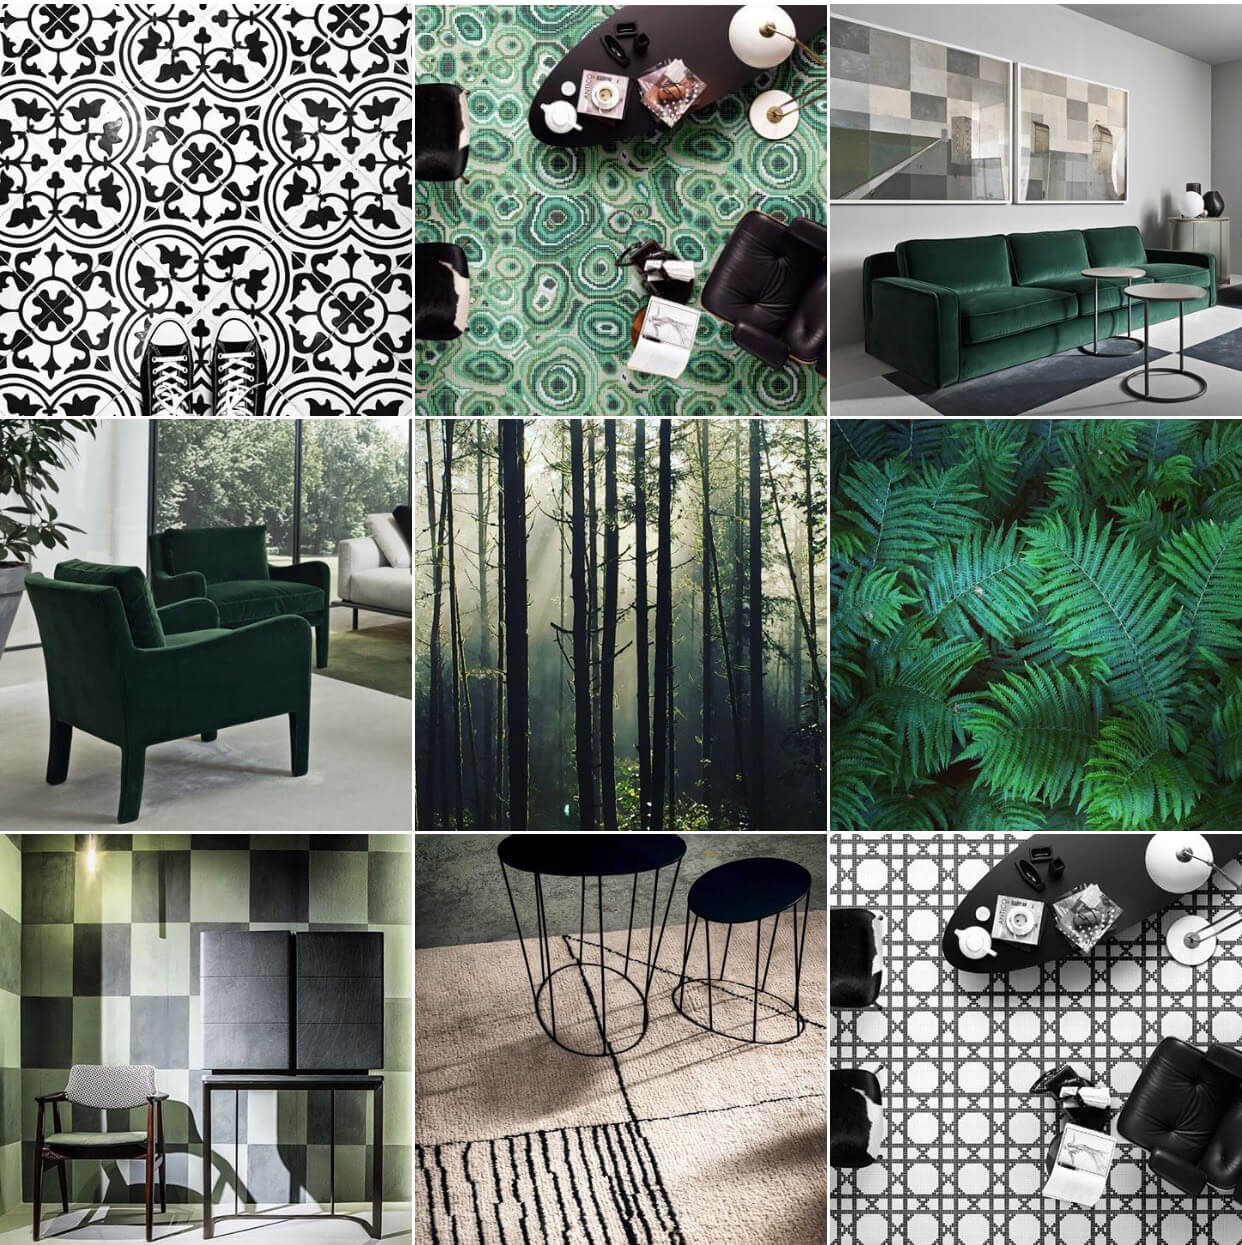 Monochromes and greens for some added freshness | STIR in conversation with Michelle Ogundehin | England | STIRworld